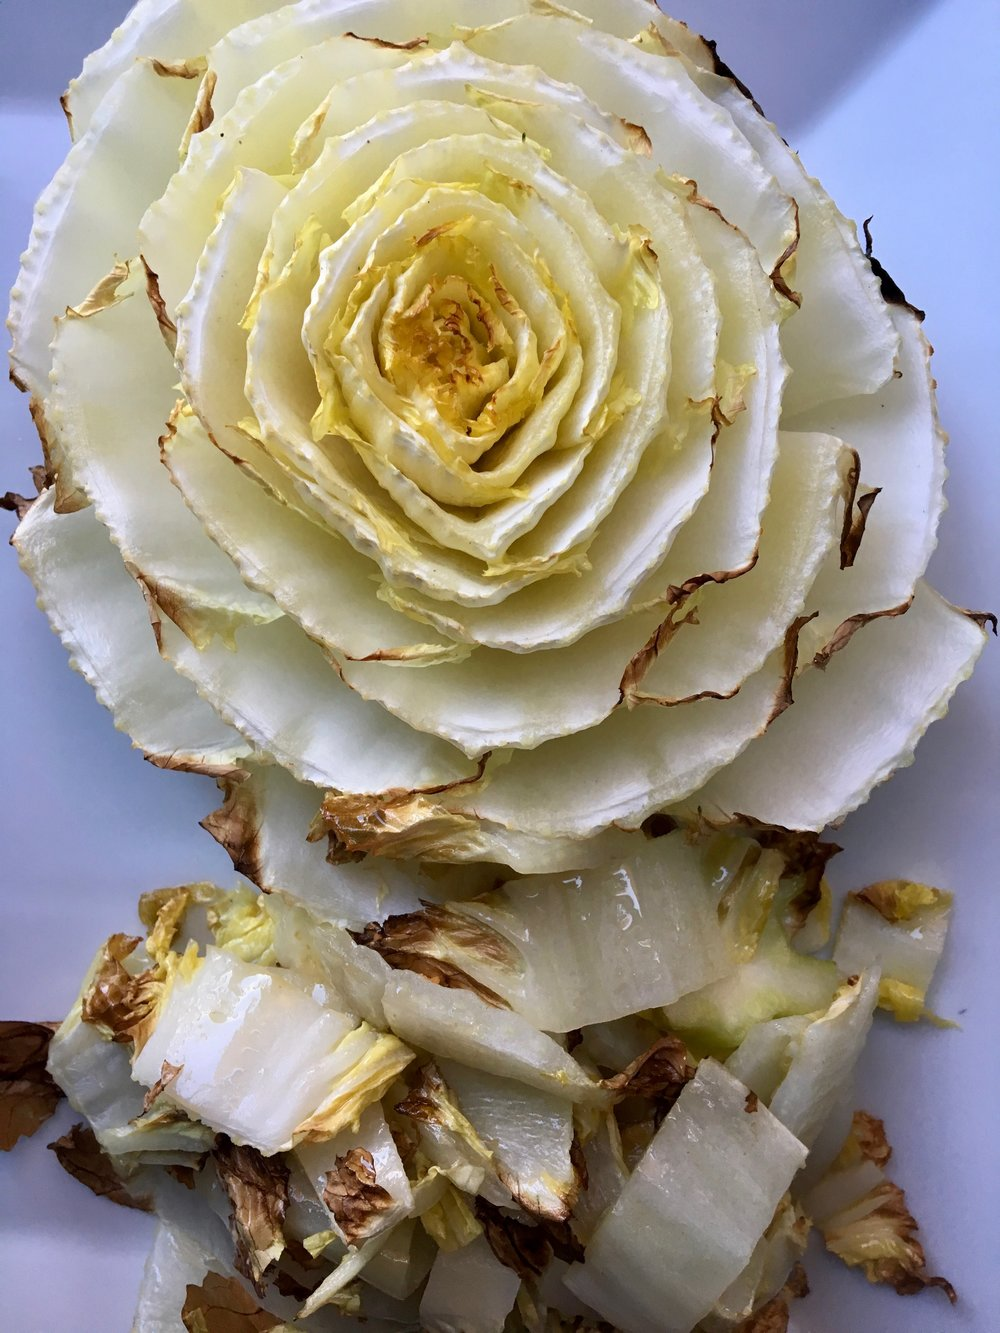 roasdted cabbage rose.jpg